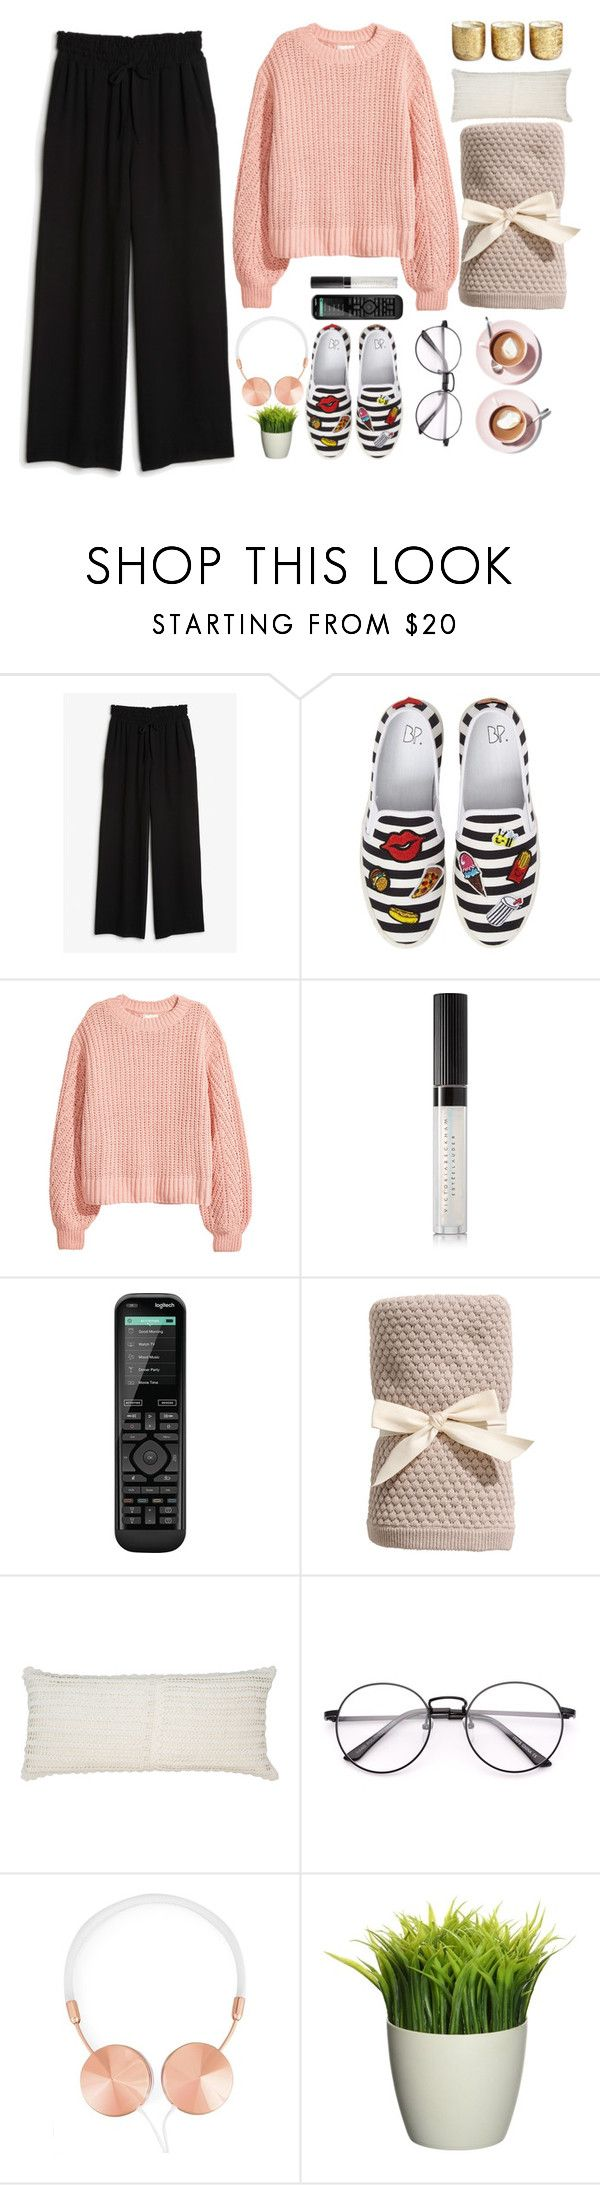 """#movienight"" by elisabetta-negro ❤ liked on Polyvore featuring Monki, BP., H&M, Estée Lauder, Logitech, Pine Cone Hill, Frends, Illume and movieNight"